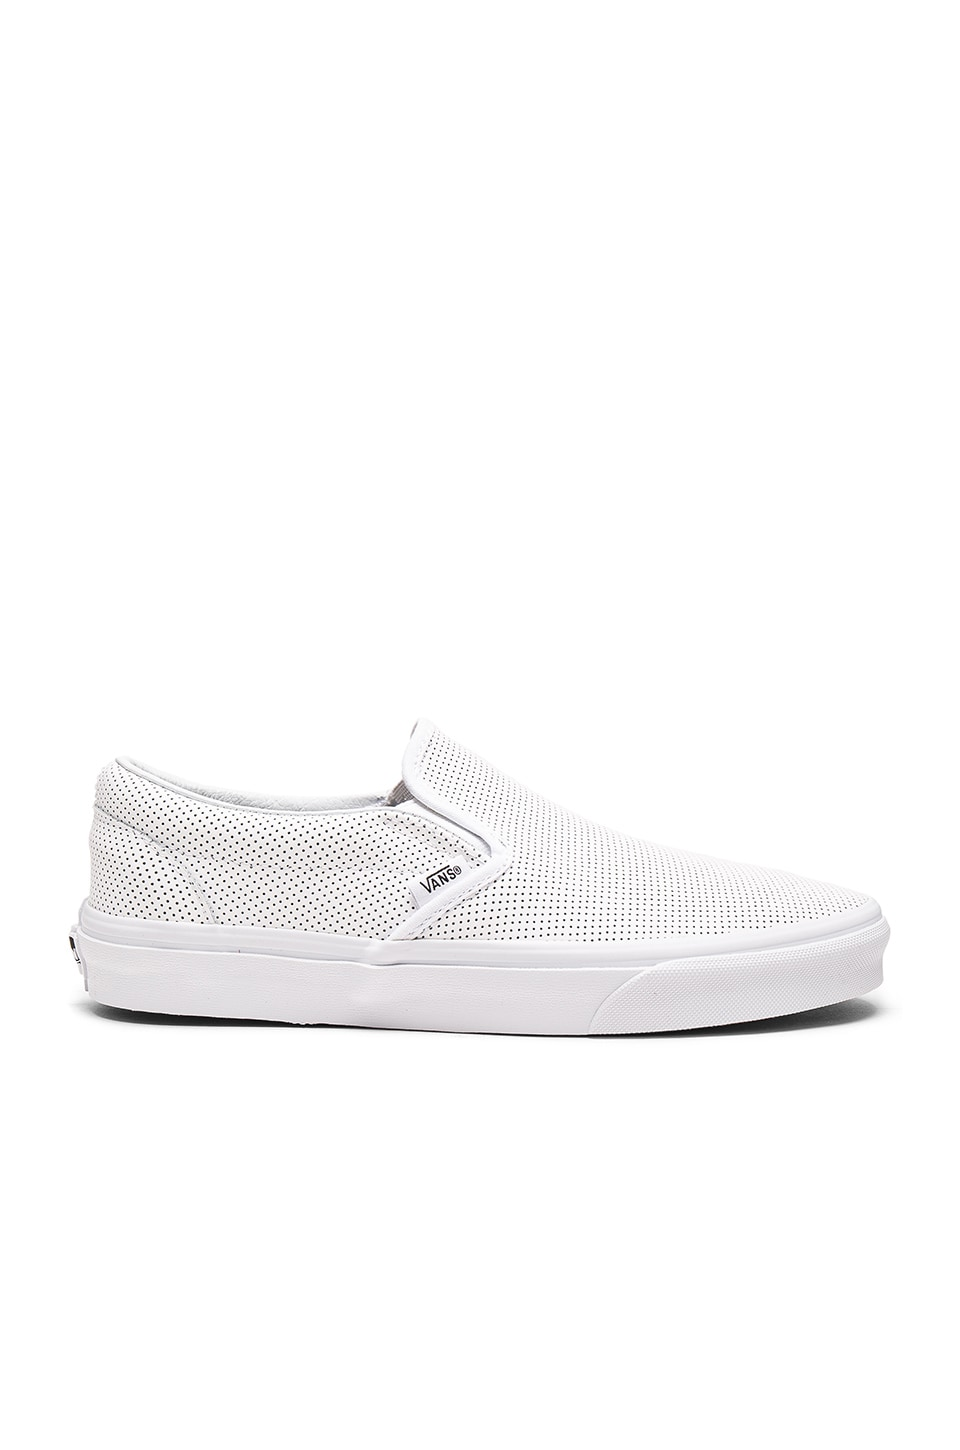 f9acc51d675f43 Vans Classic Slip-On Perf Leather in White